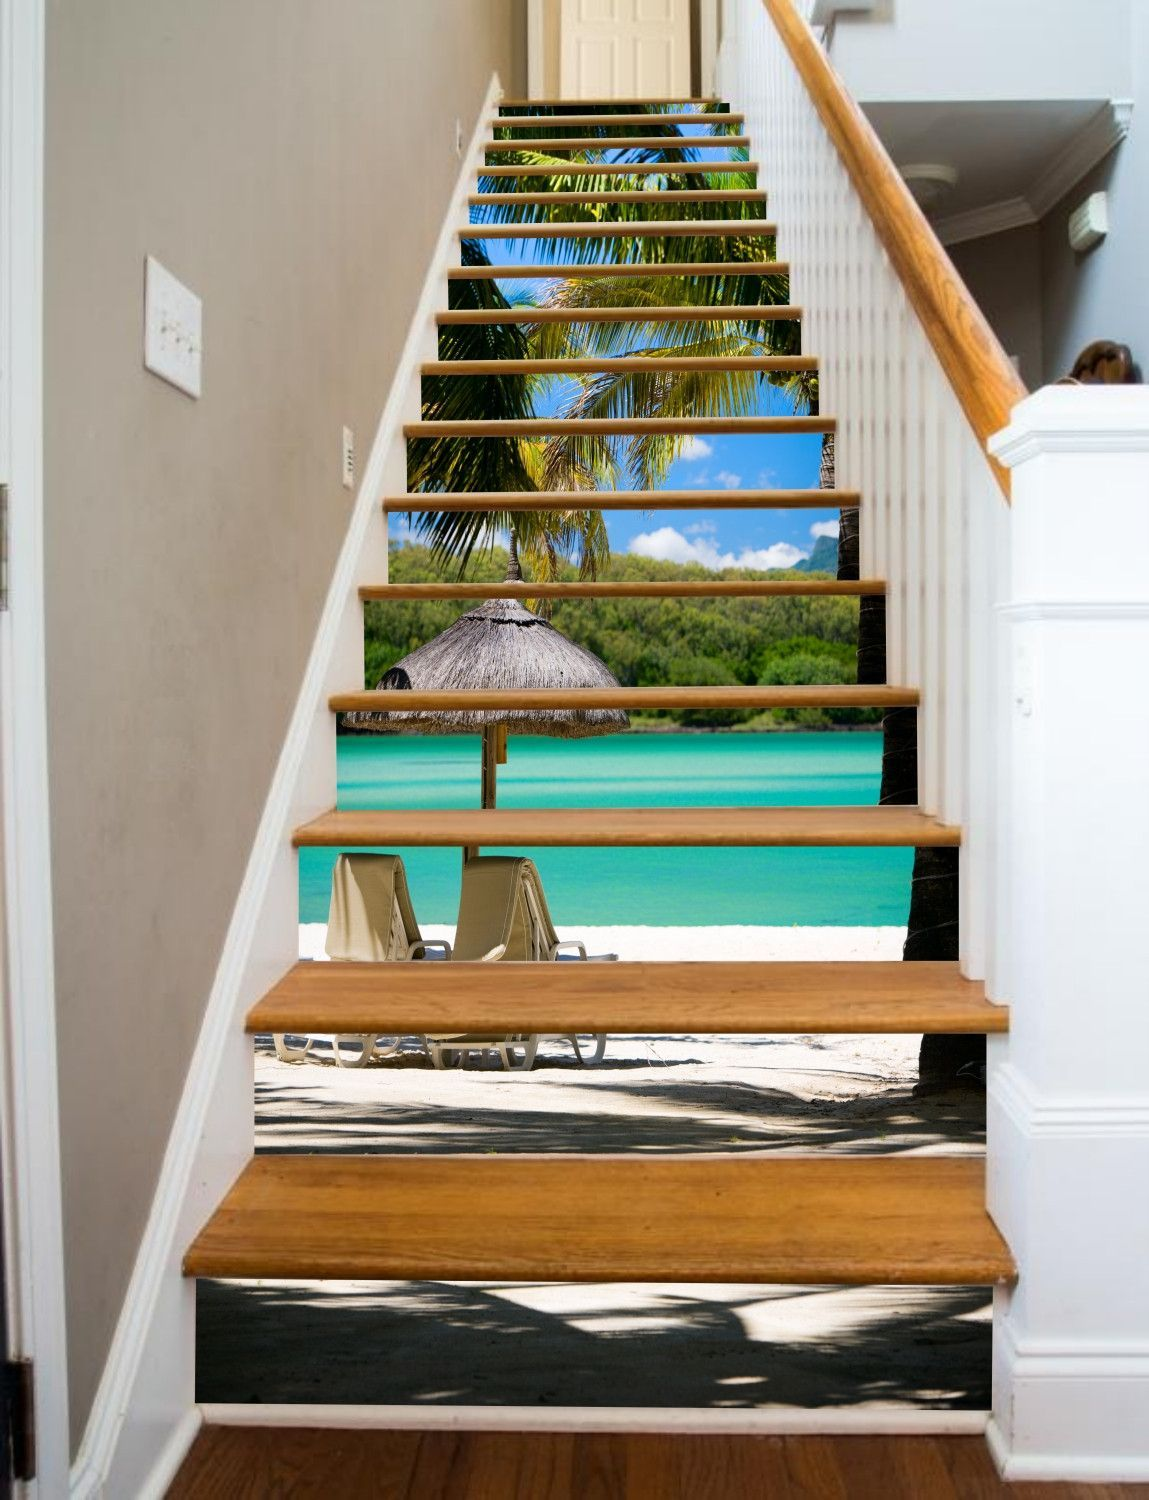 Painted Stairs Paradise Painted Stairway 15 Stairs Beach Scenes South Pacific